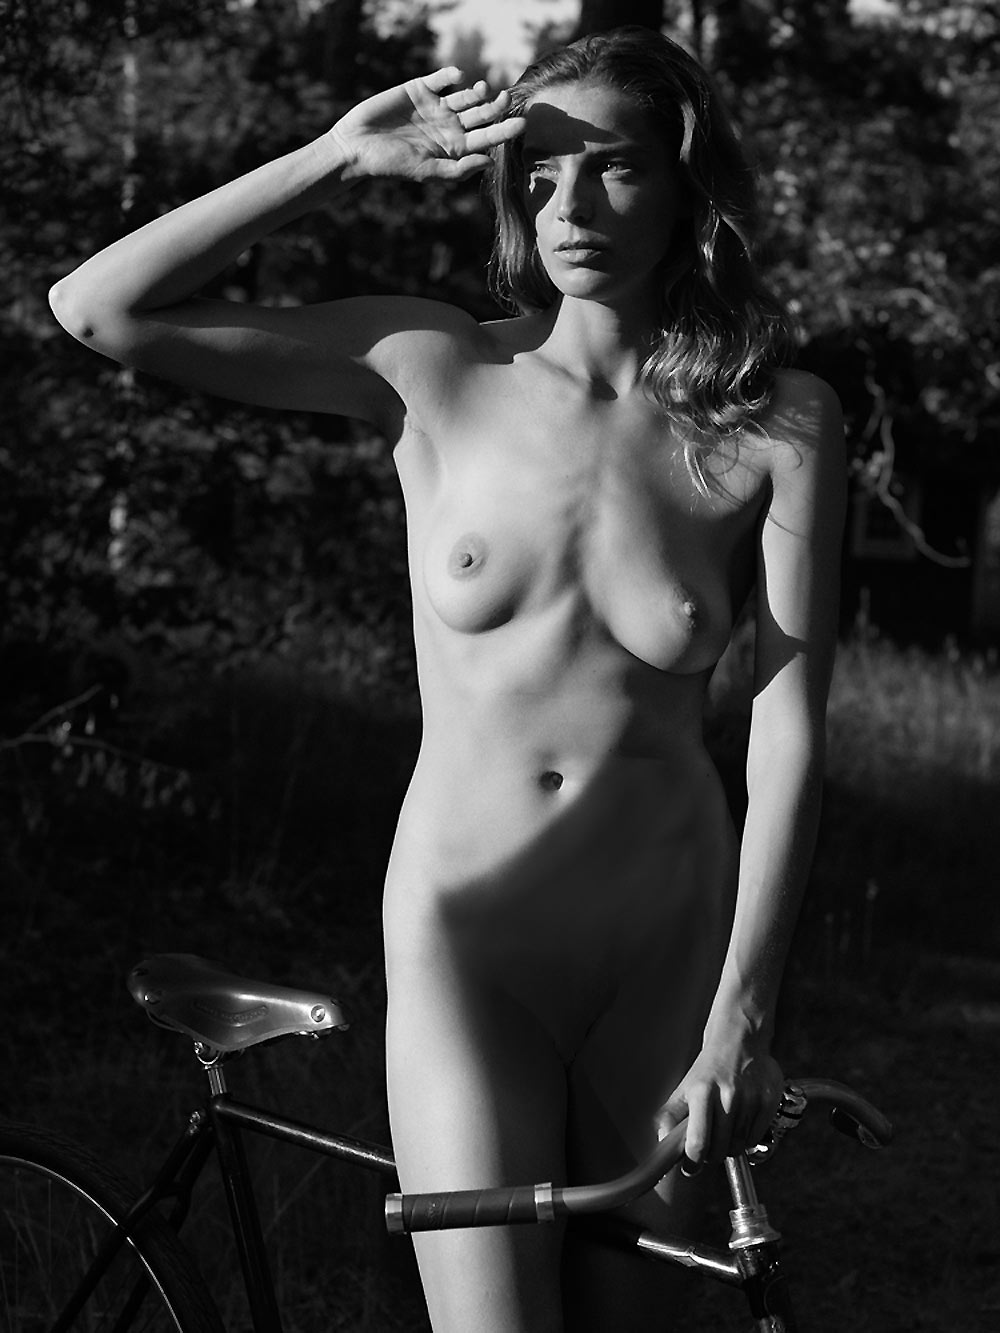 Daria, Werbowy, Mikael, Werbowy, Interview, September, 2014, nude, fashion, editorial, oracle, fox